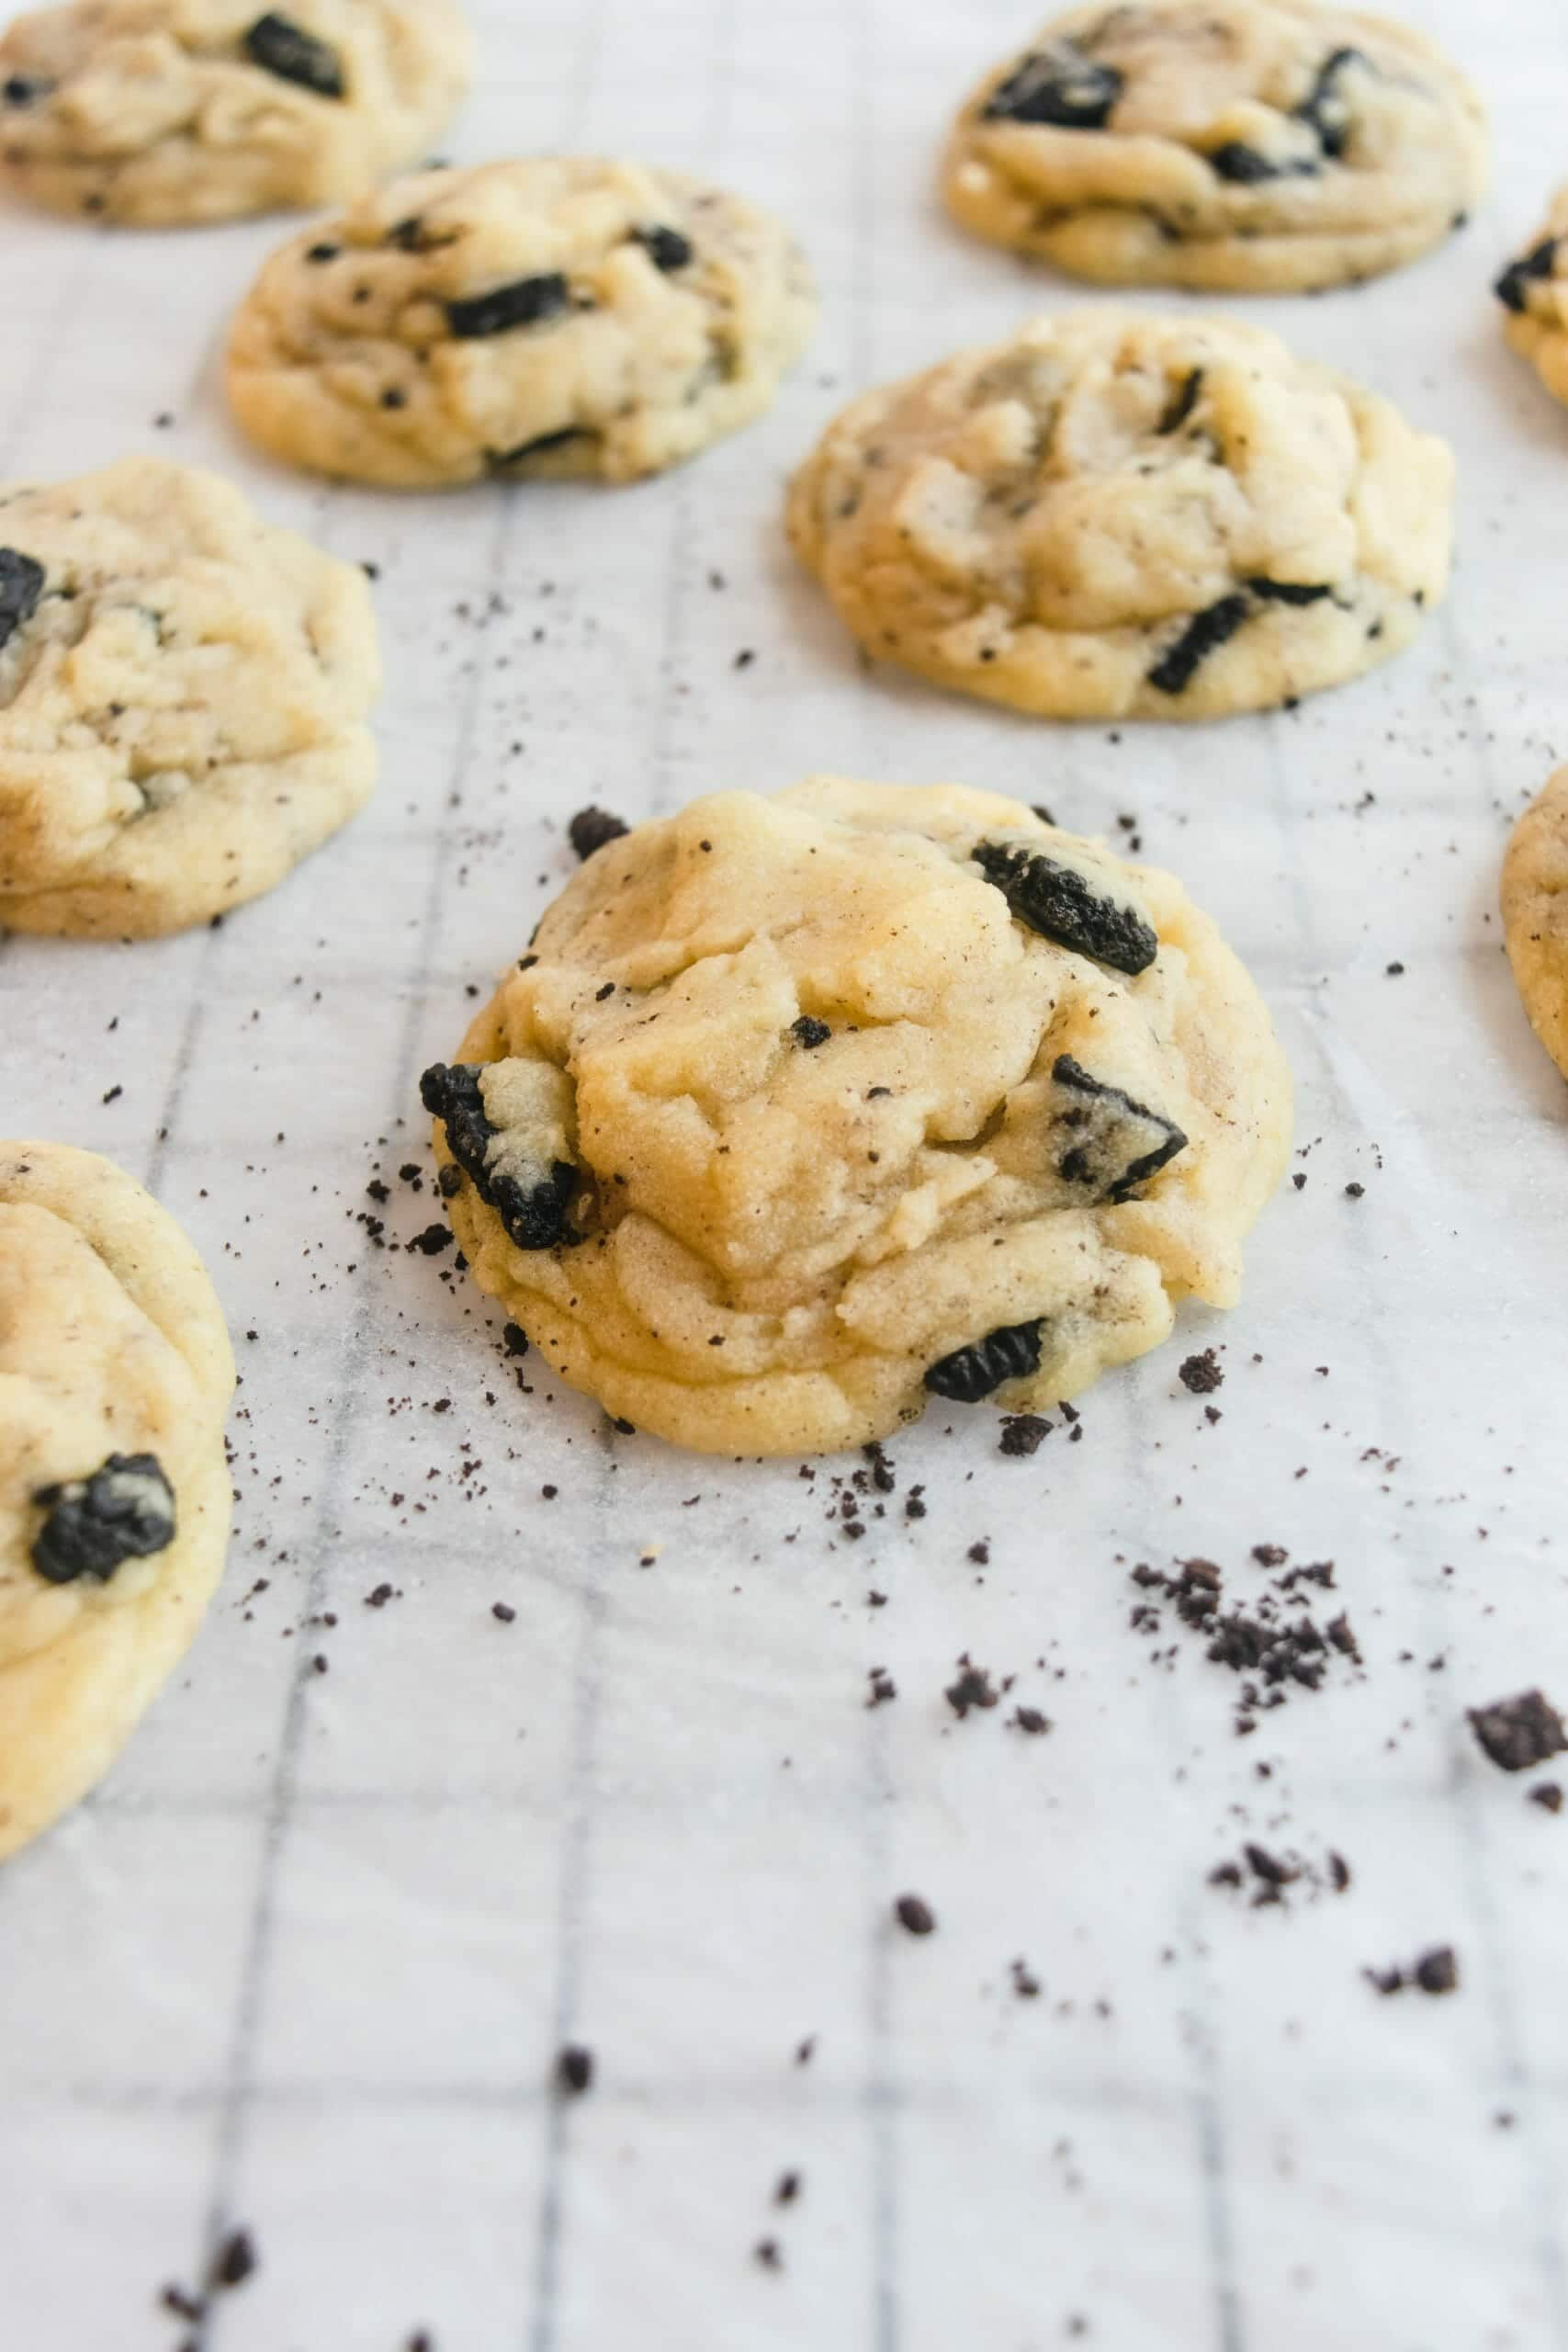 Cookies and Cream Stuffed Cookies